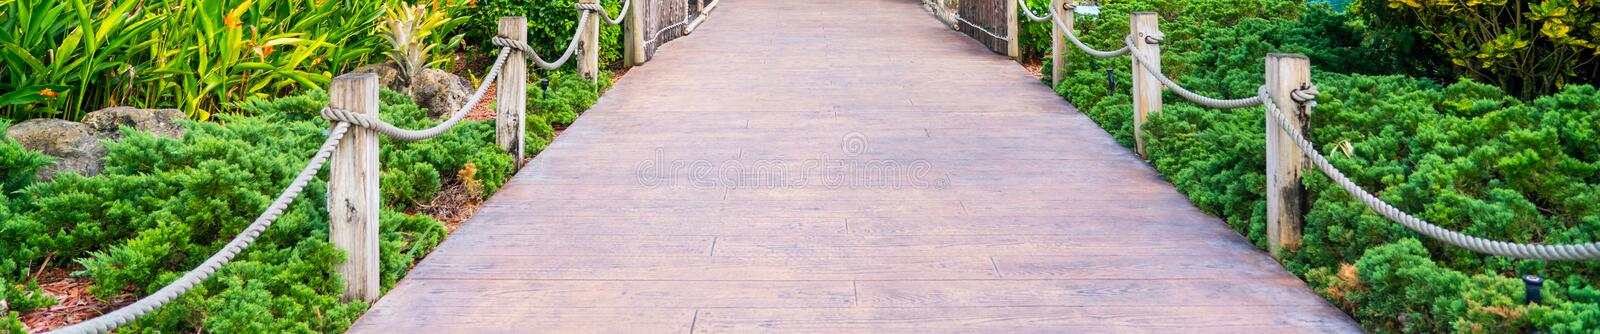 Wooden path in a park in spring royalty free stock photography